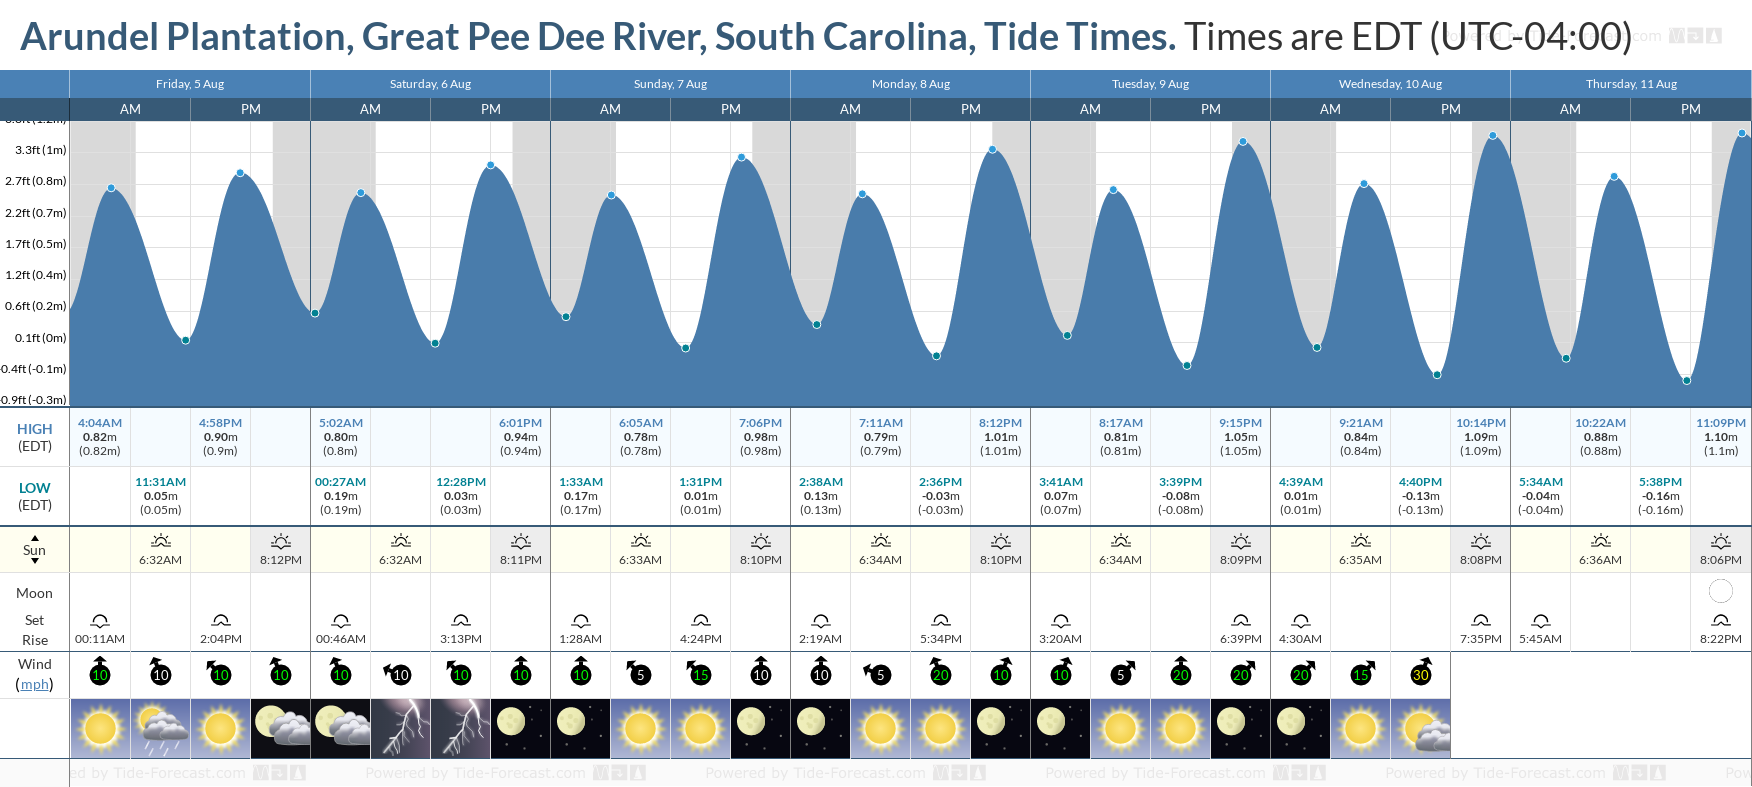 Arundel Plantation, Great Pee Dee River, South Carolina Tide Chart including high and low tide tide times for the next 7 days